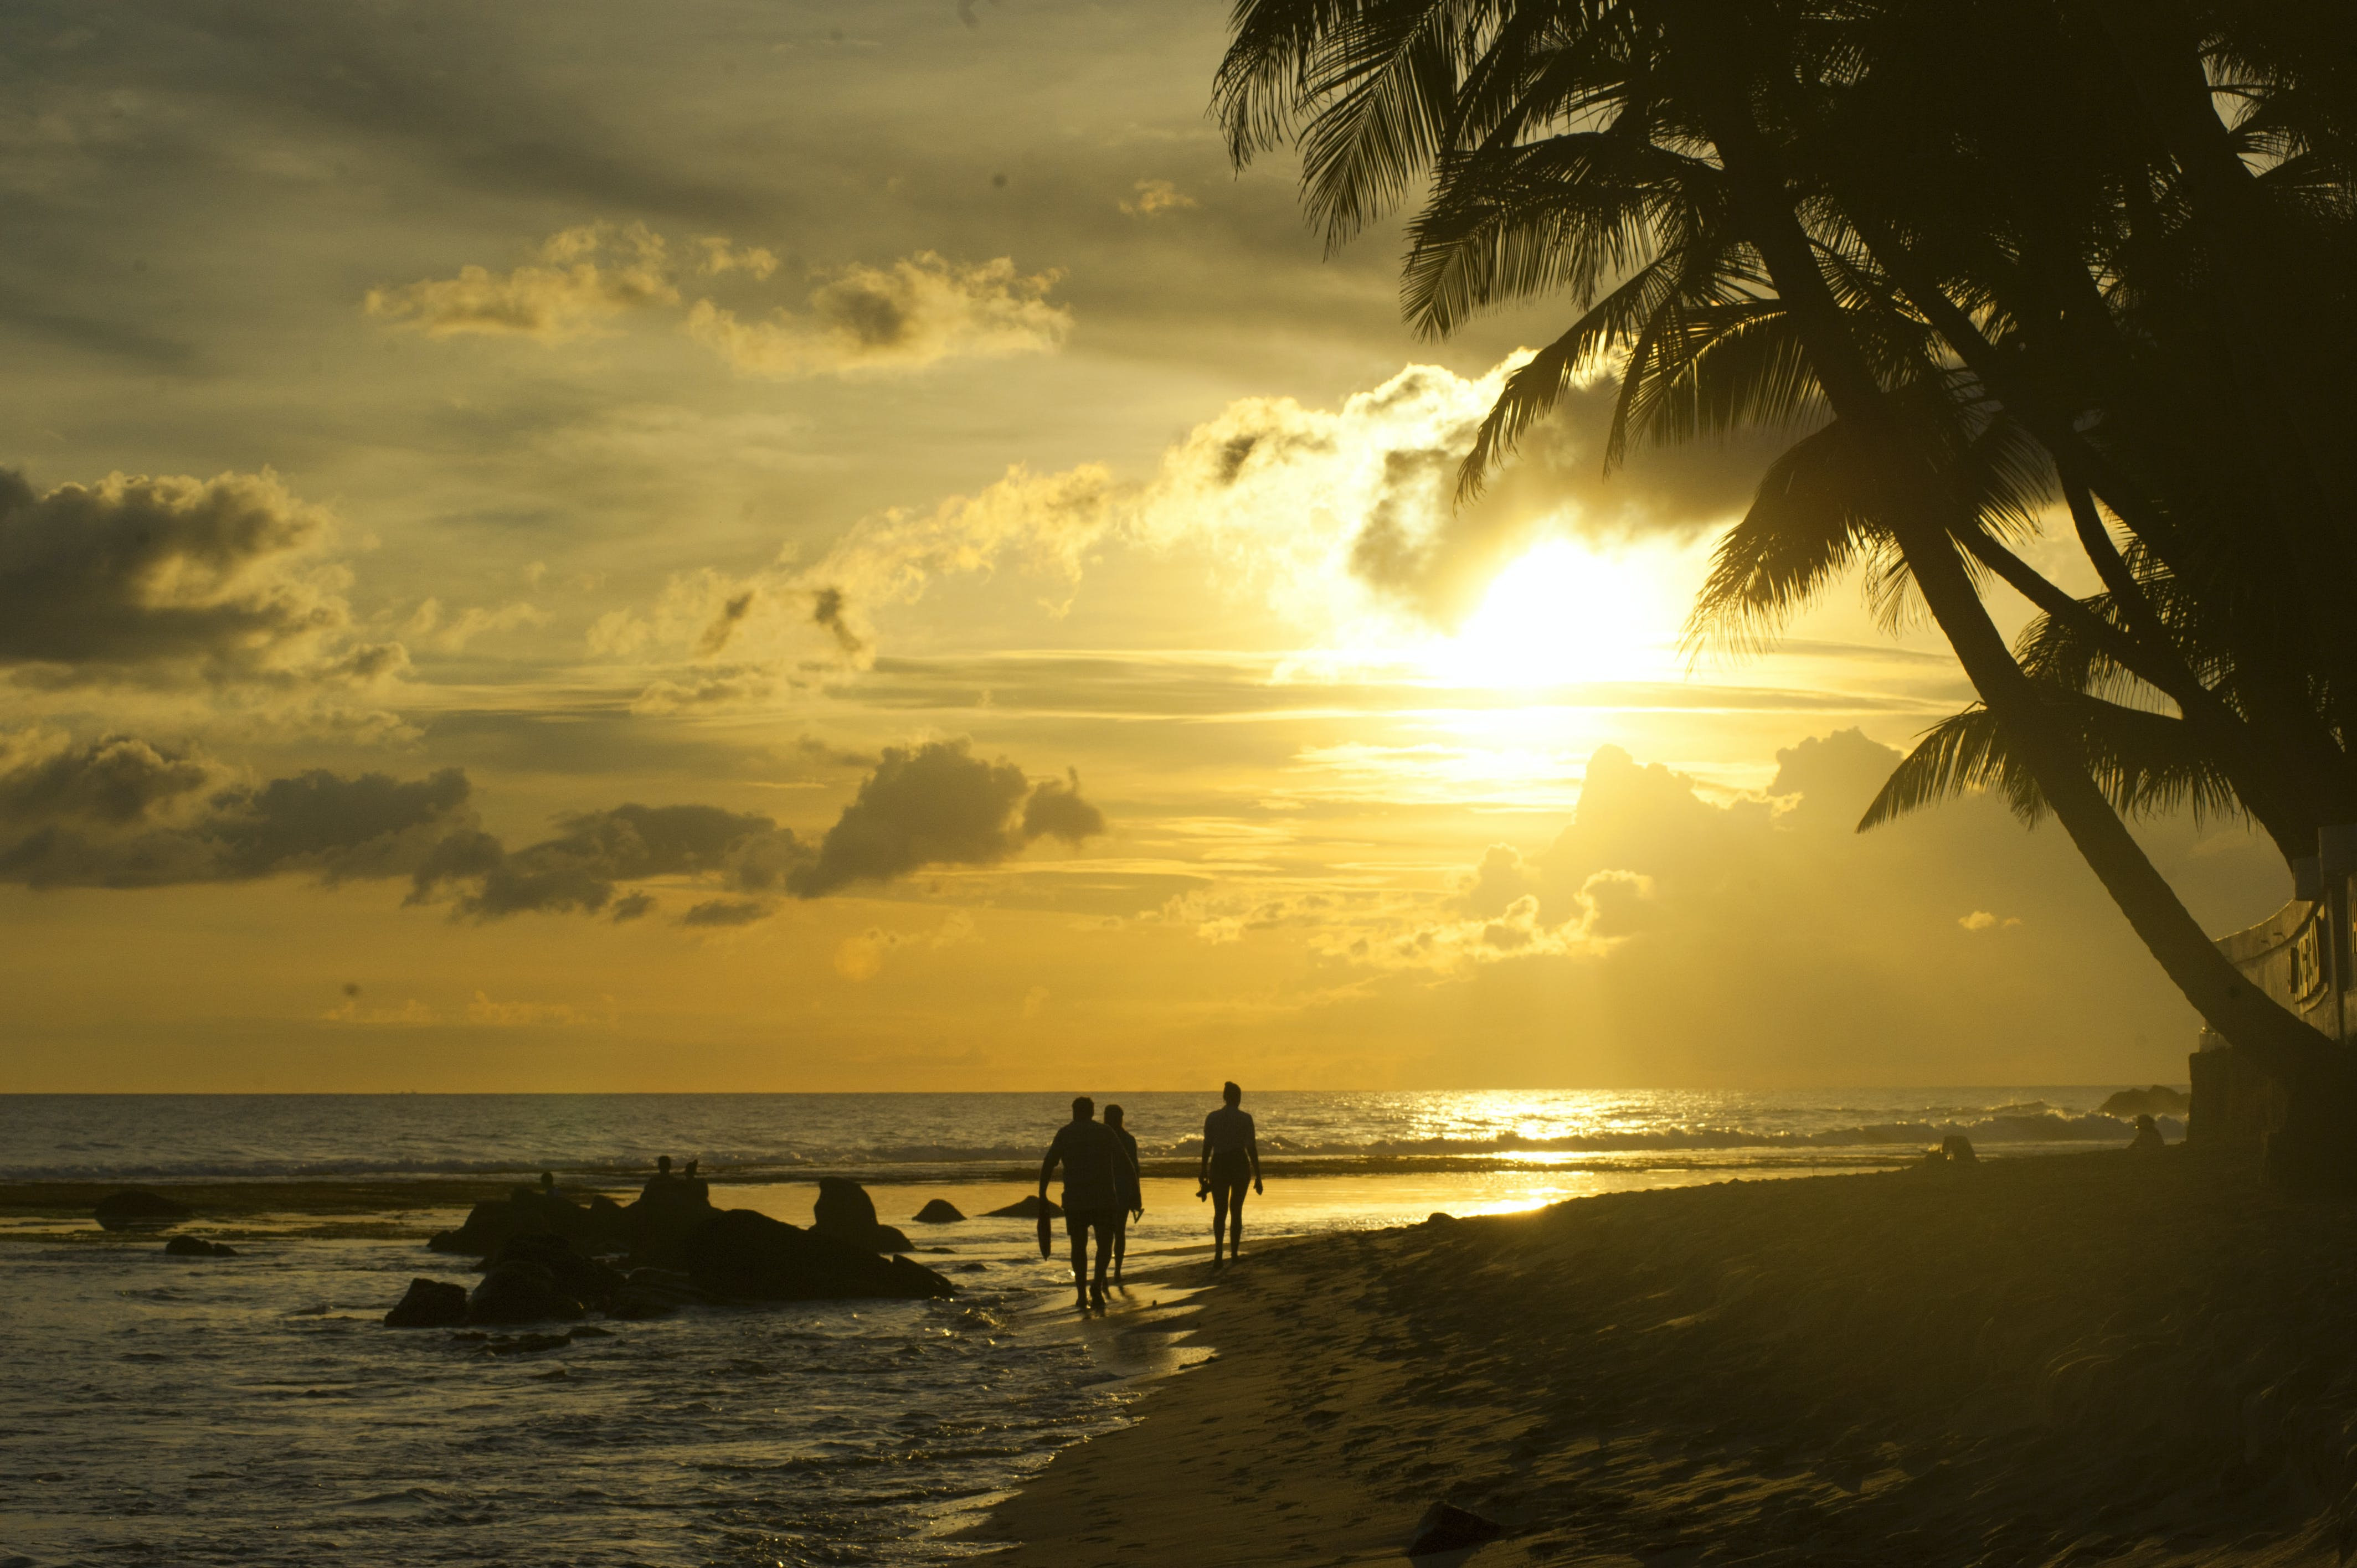 backlit, beach, caribbean